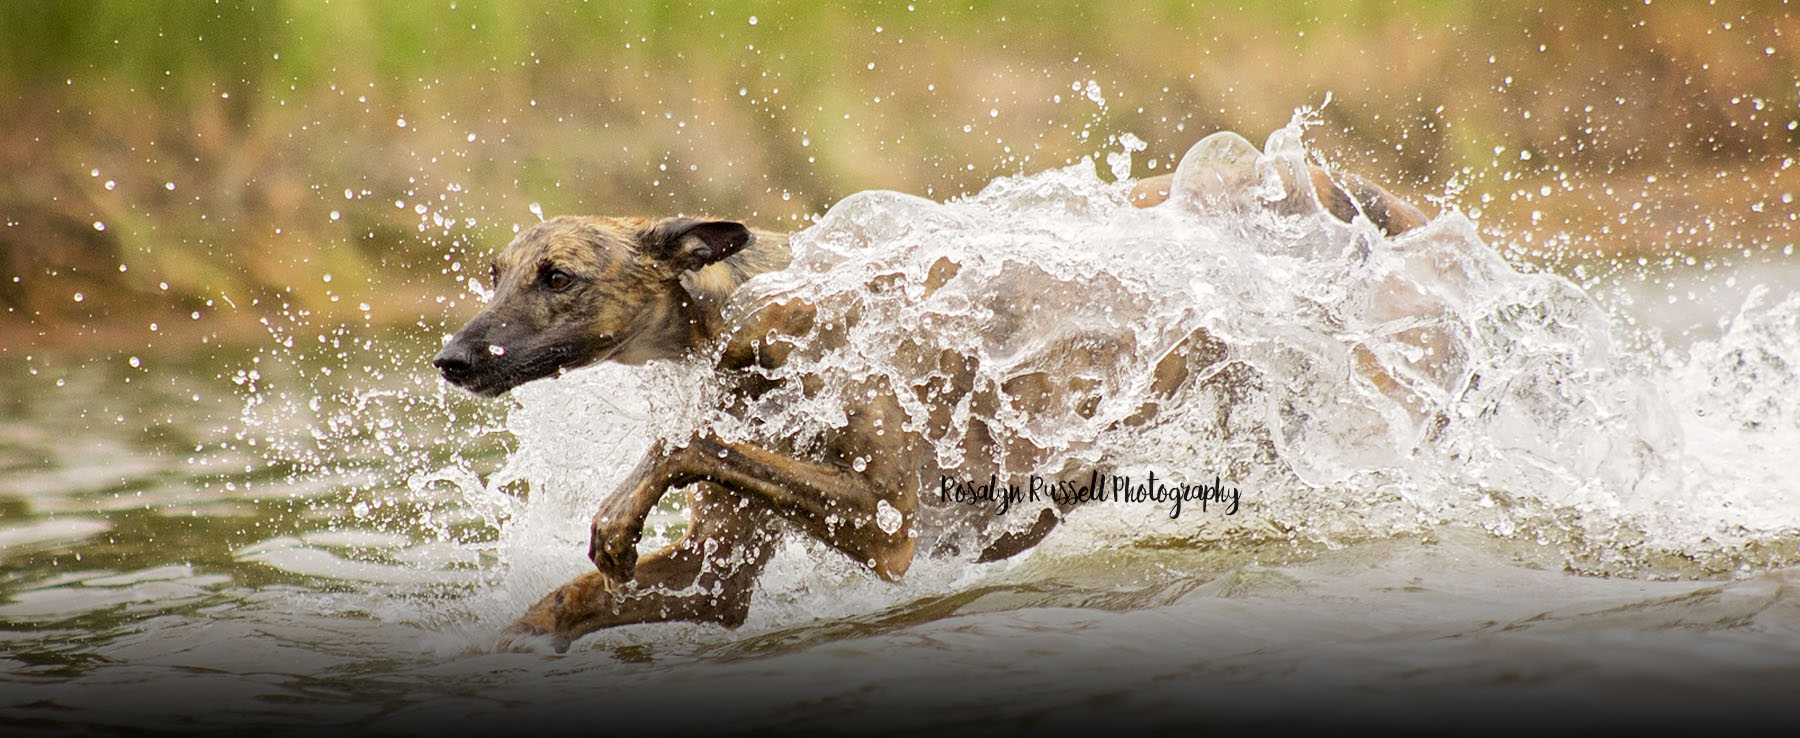 Whippet running and playing in water Off leash Training